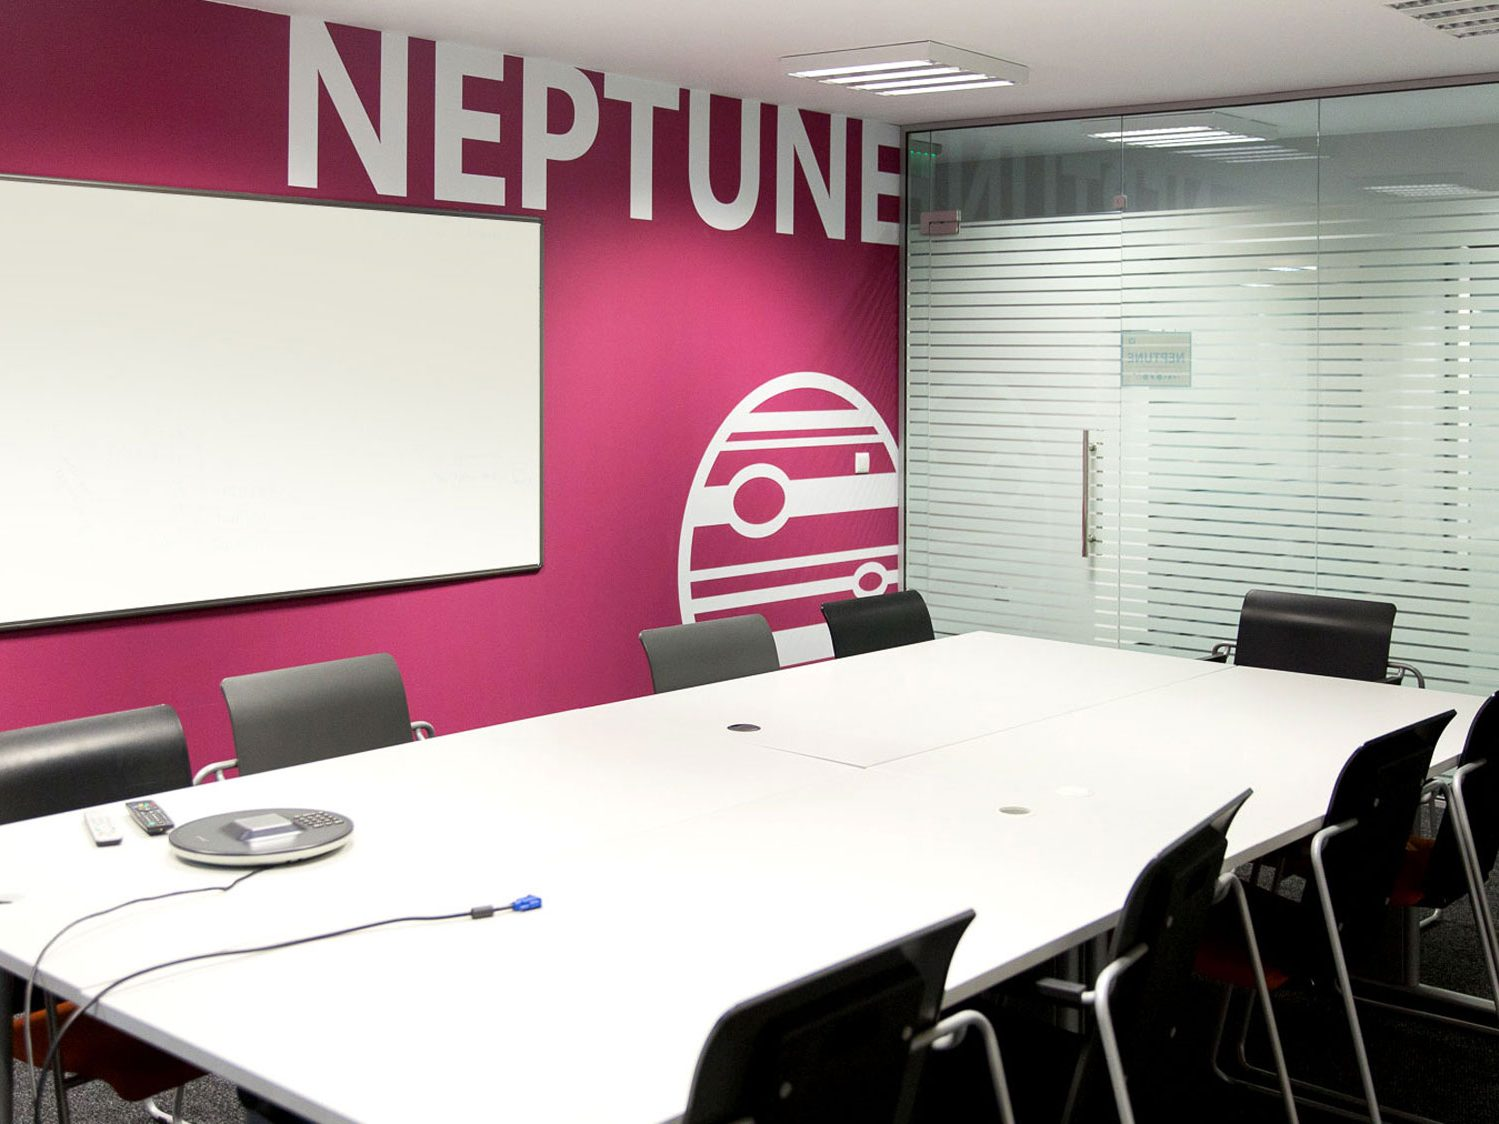 Meeting room with pink wall dedicated to Neptune / Фолио на стена